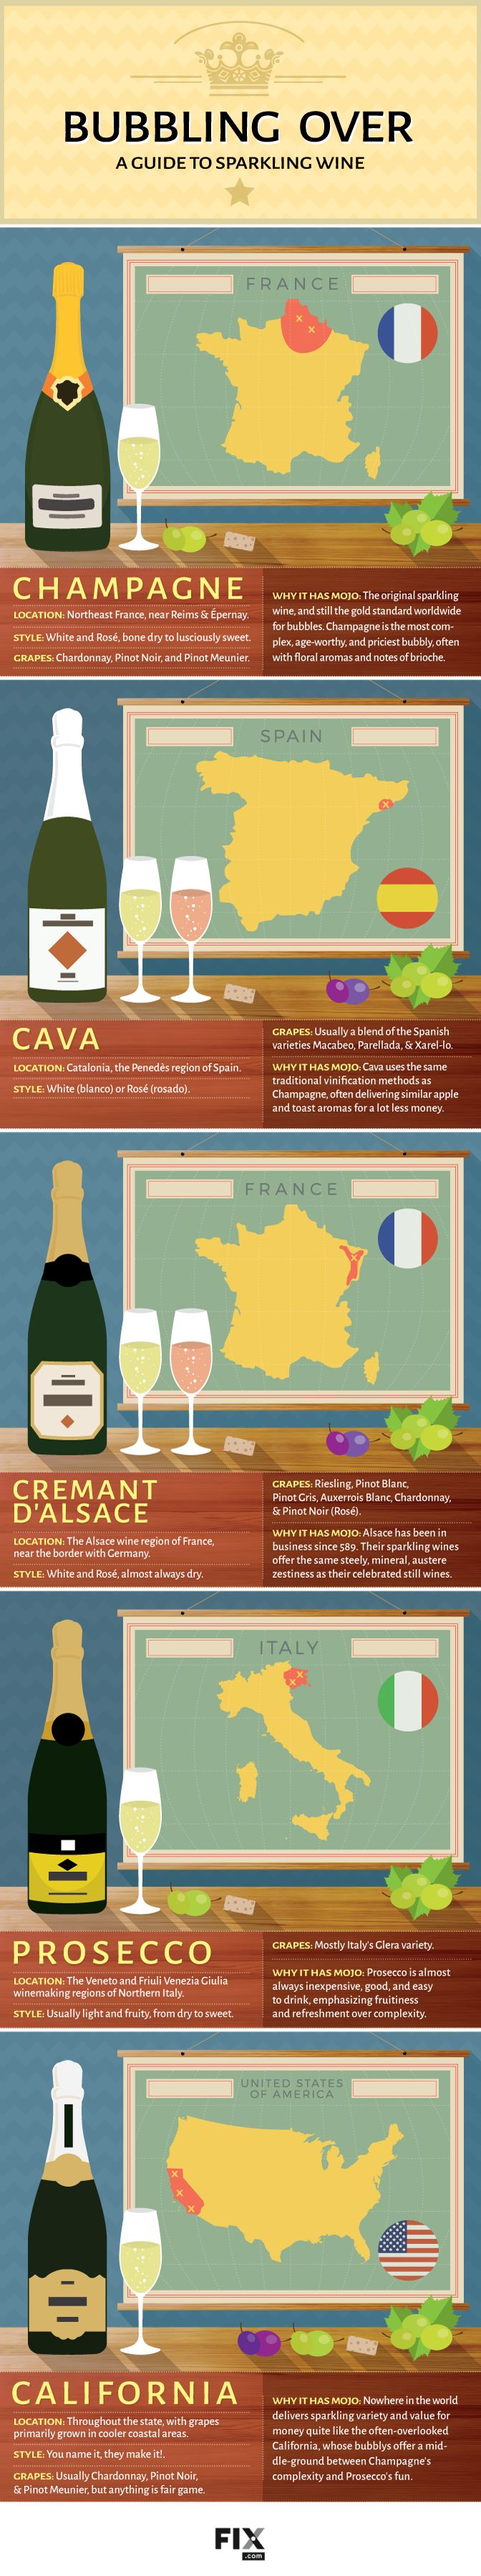 Bubbling Over A Guide to Sparkling Wine #infographic #Wine #Food